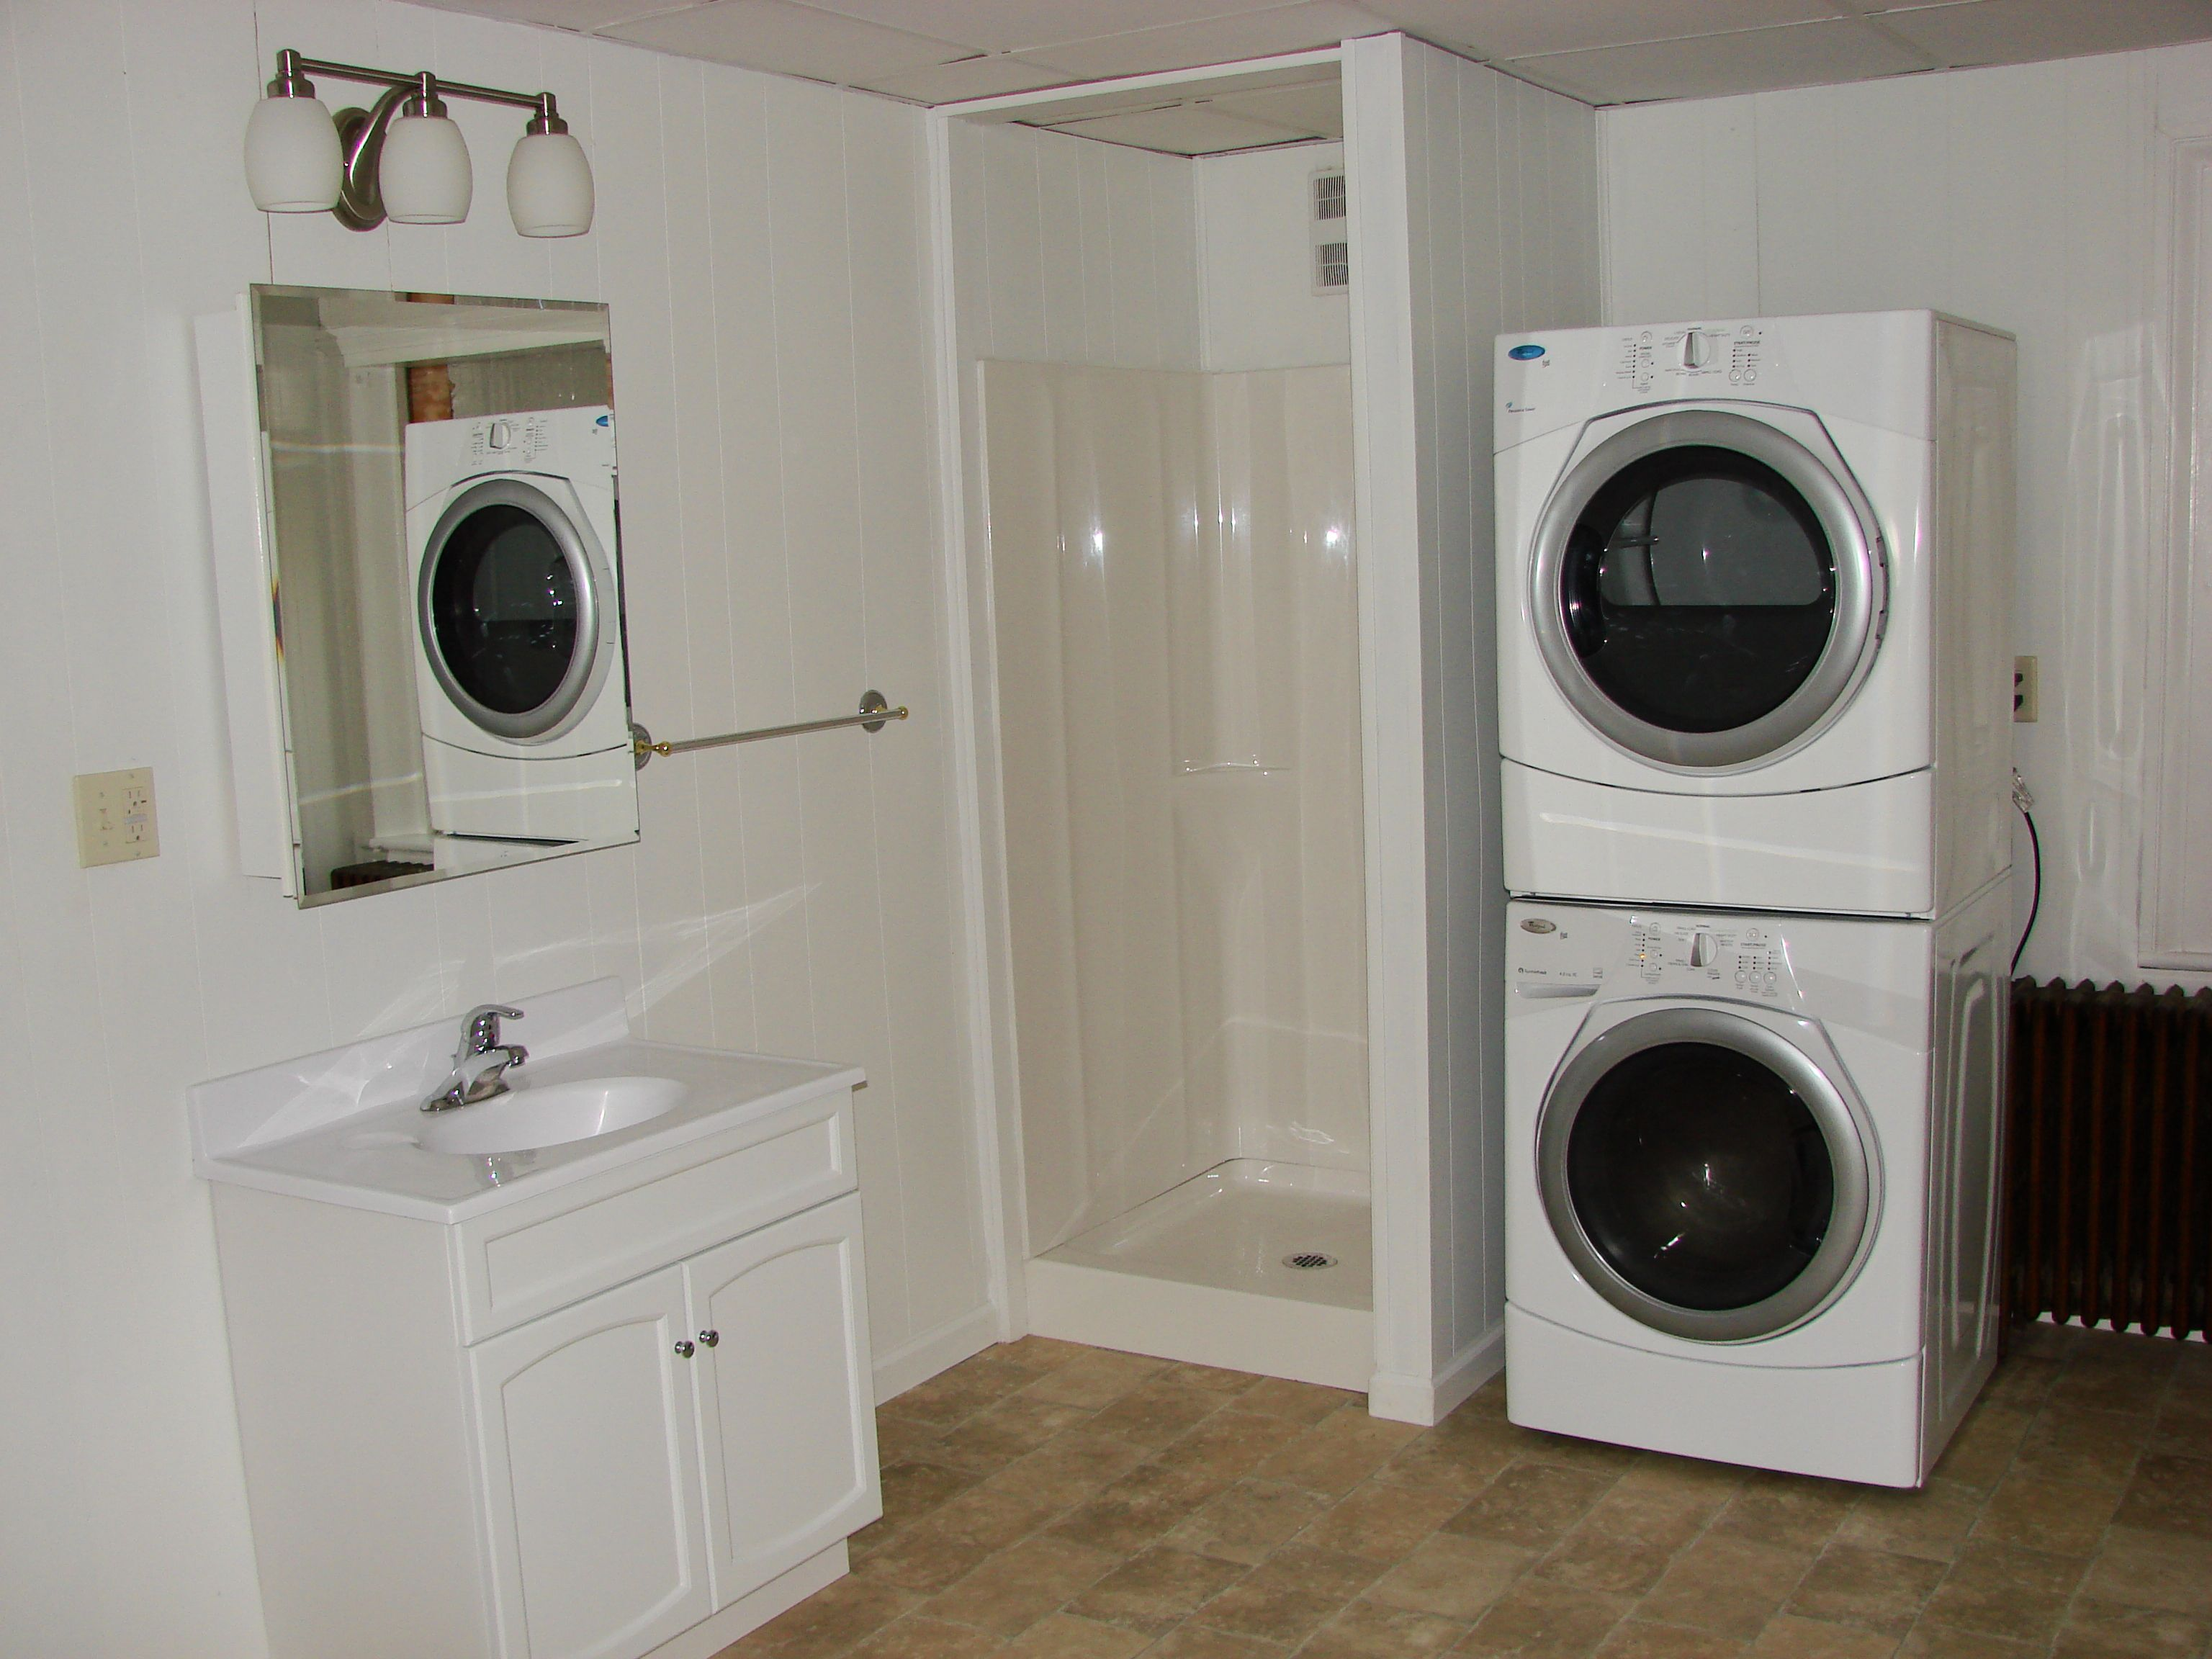 Cool white wash machine and dry machine on the side of for Small bathroom laundry designs